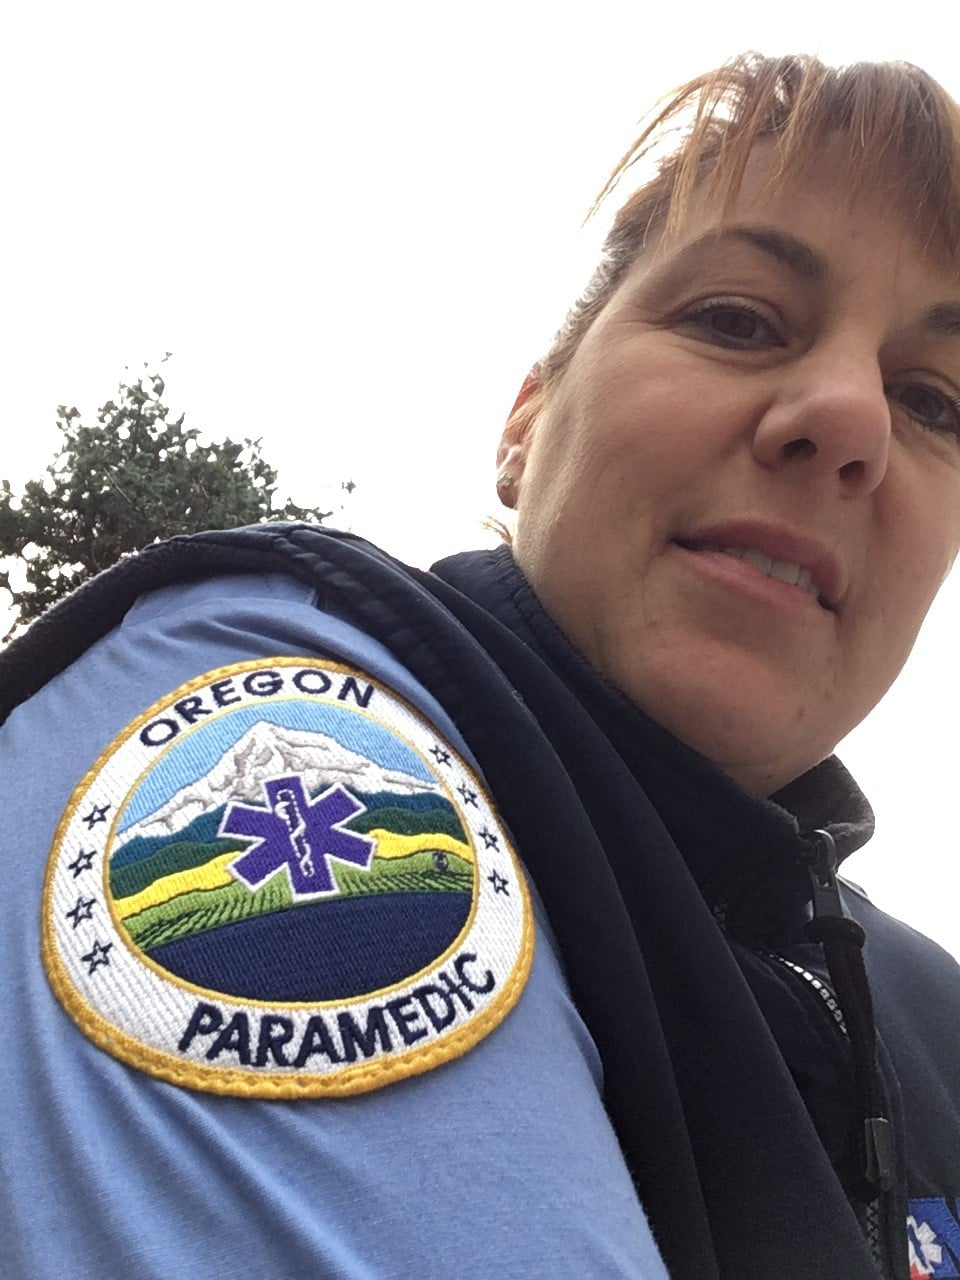 Amy Epperson Oregon Paramedic